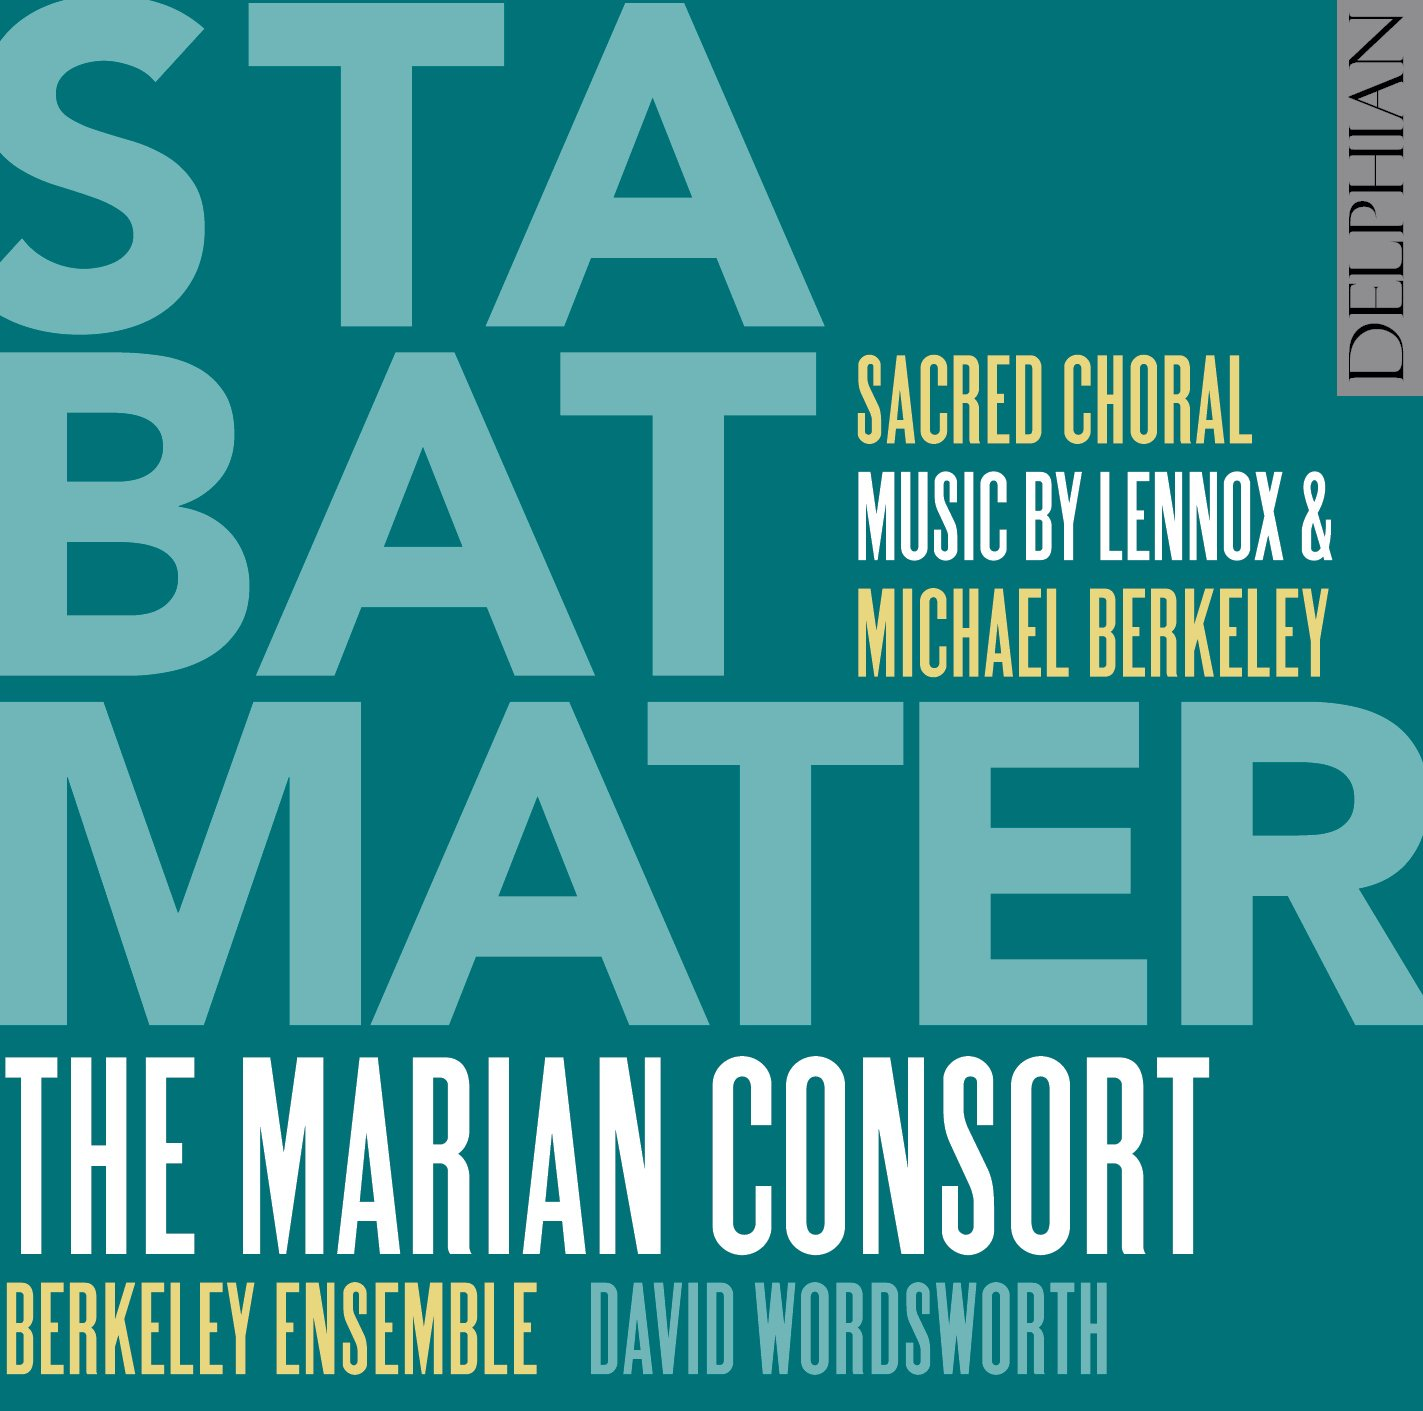 Stabat Mater: sacred choral music by Lennox & Michael Berkeley CD Delphian Records